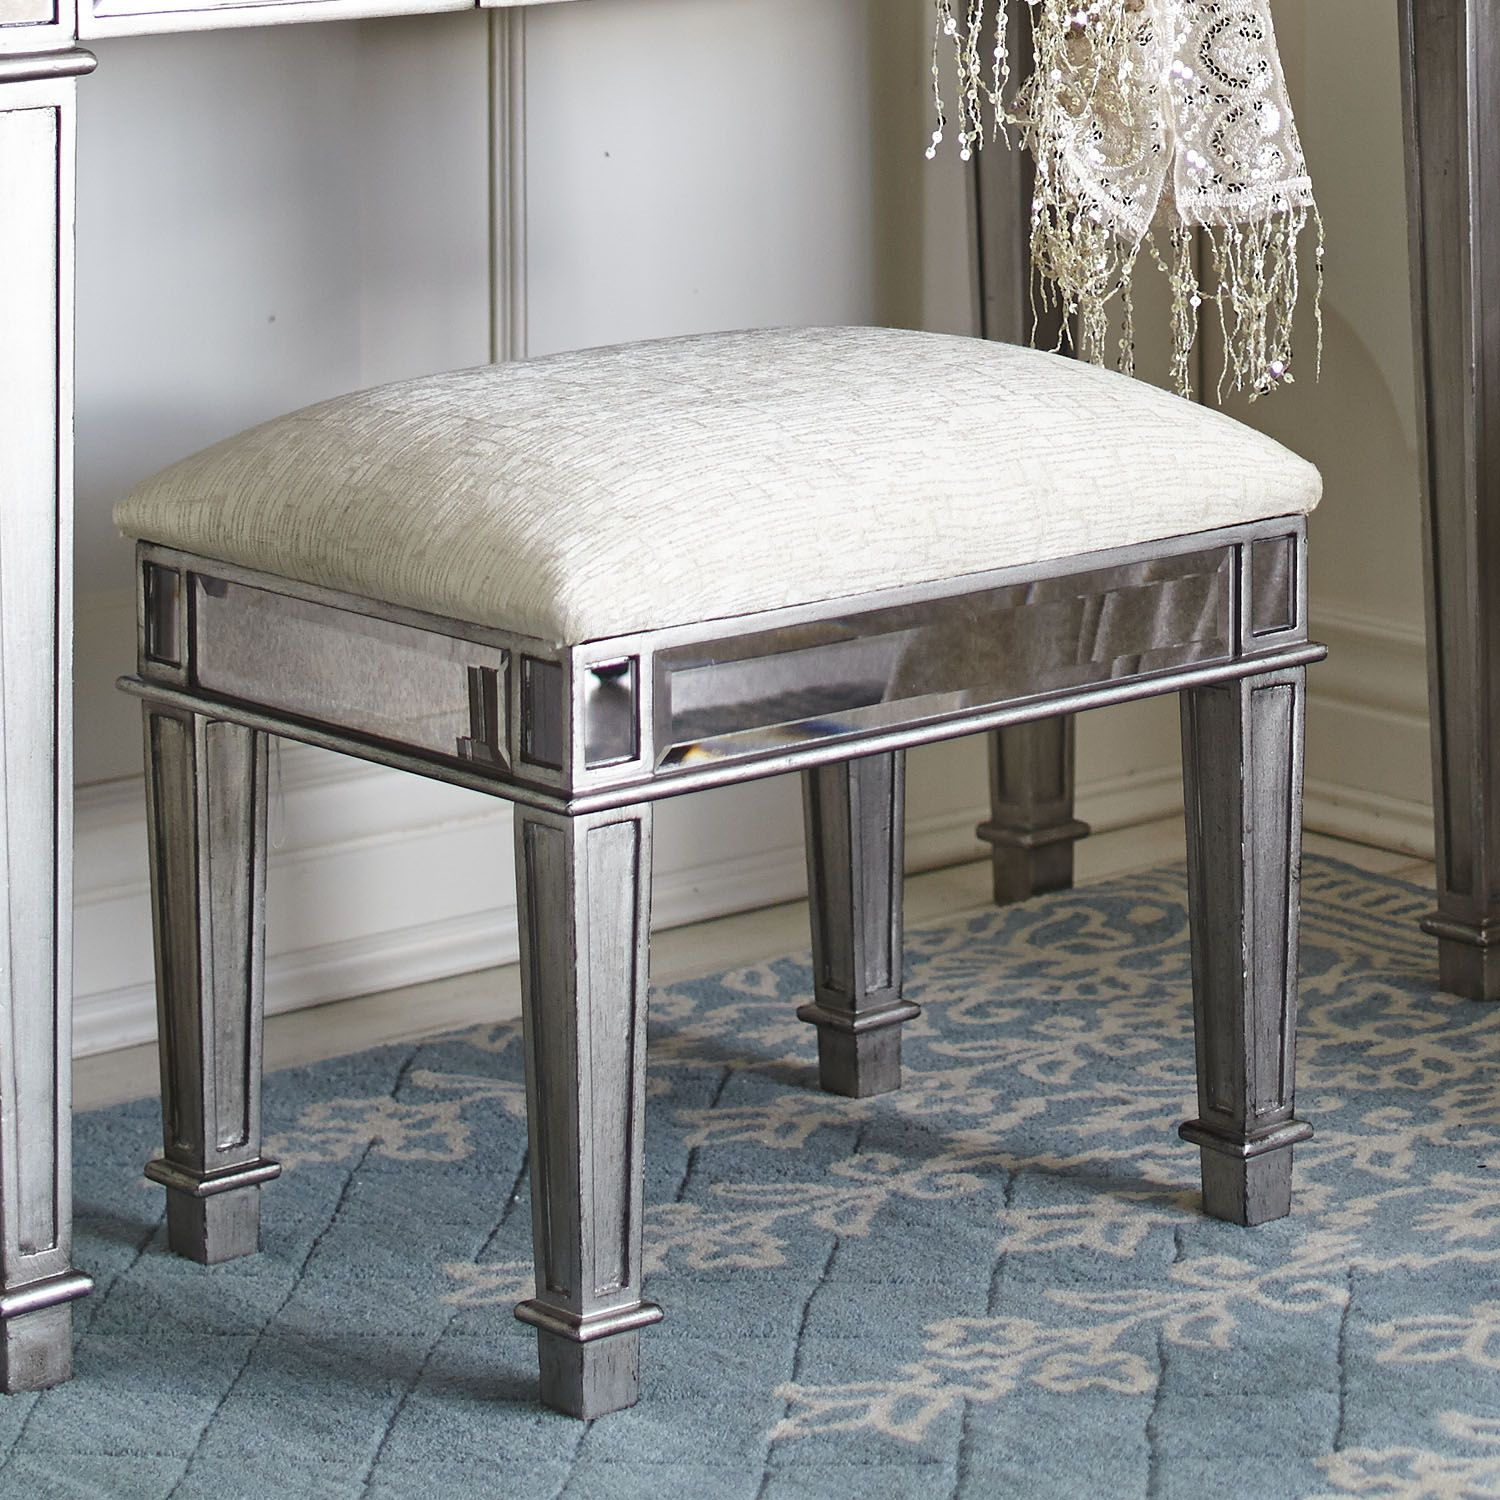 Hayworth Vanity Bench - Silver | Pier 1 Imports